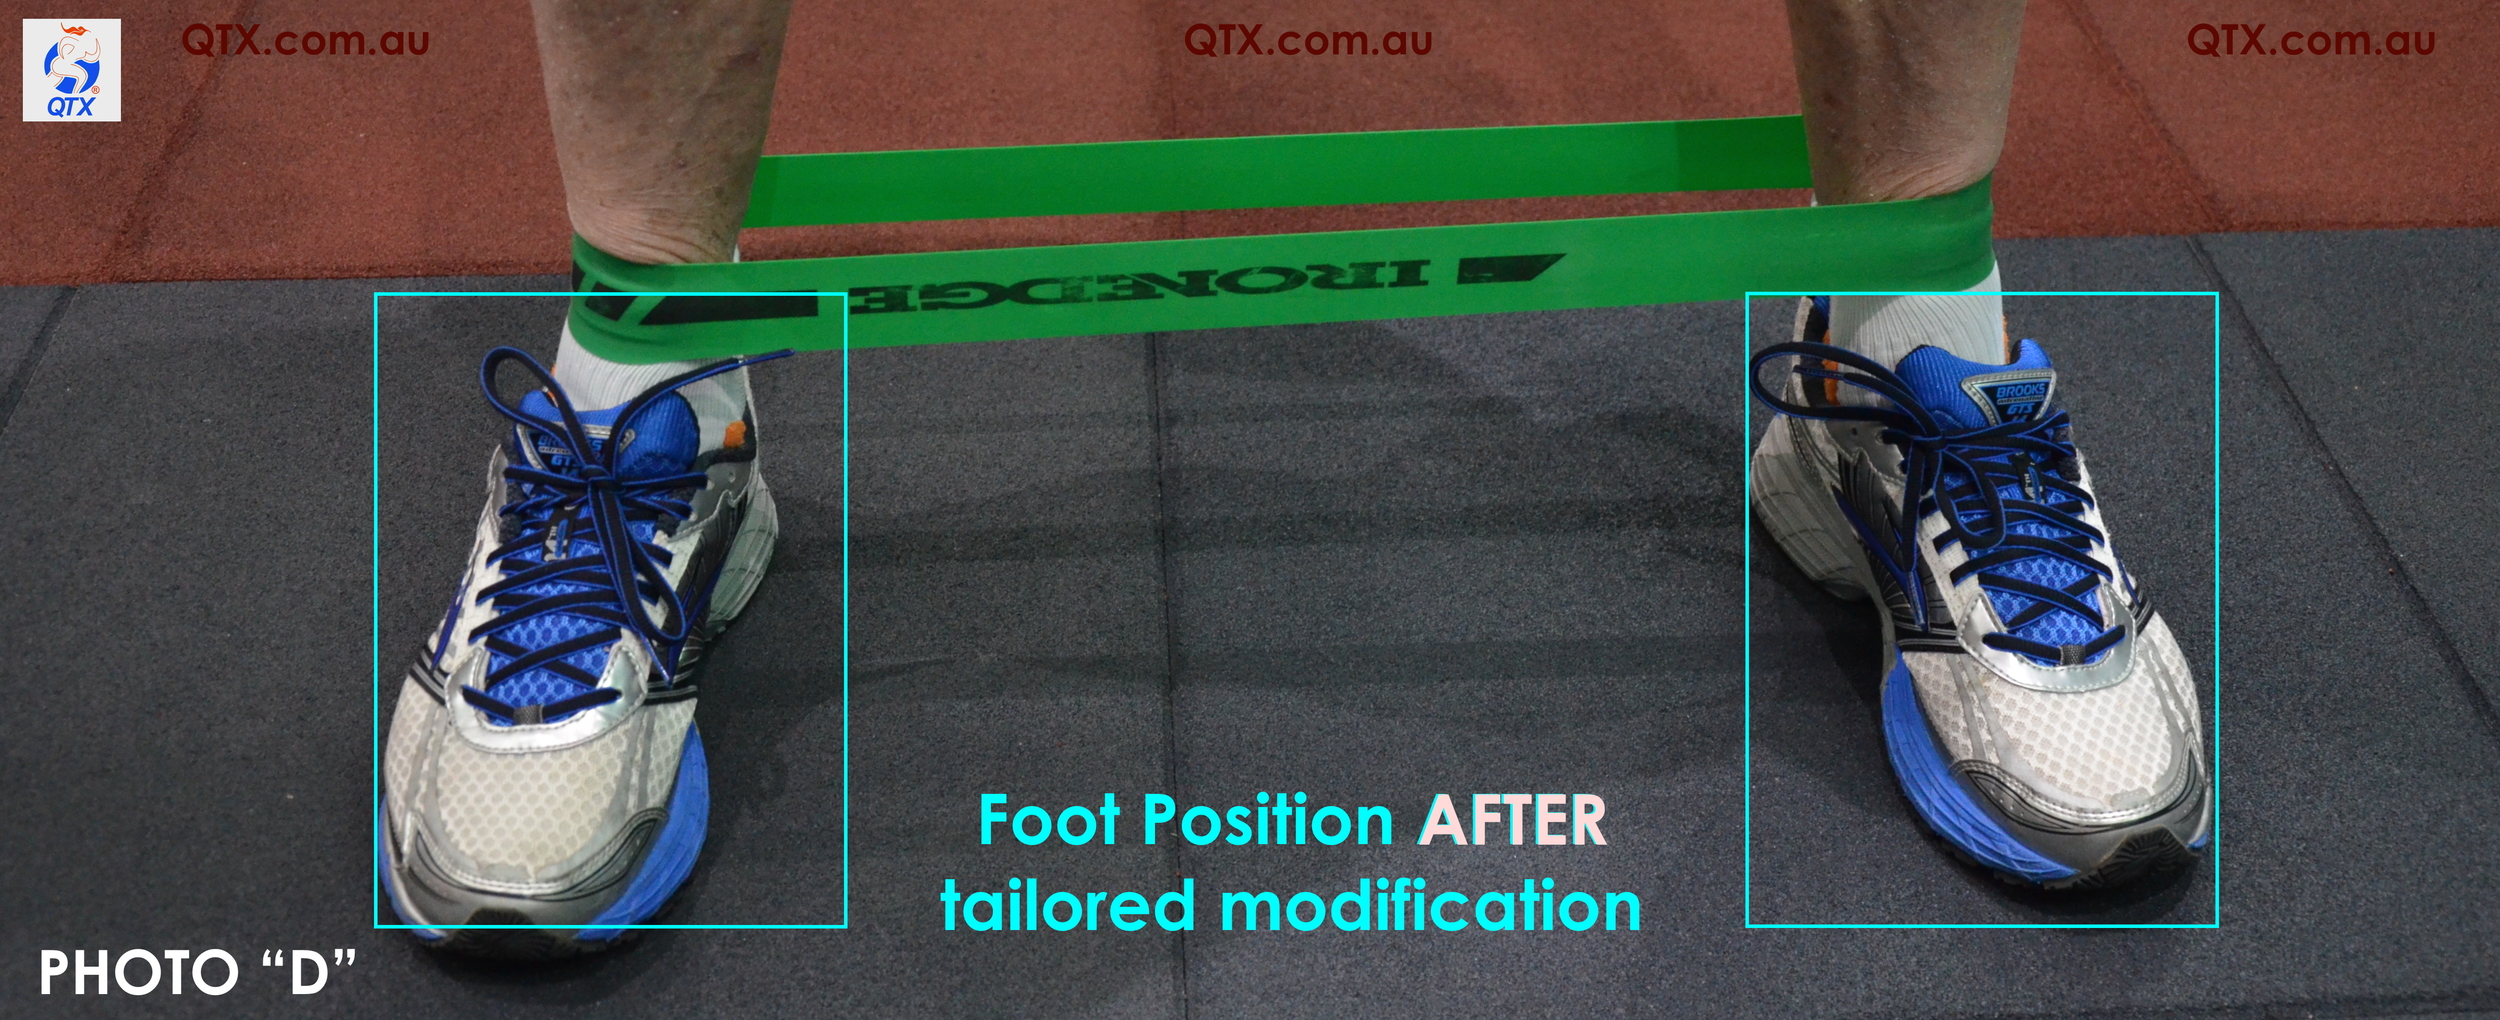 "Simply by rotating feet internally (toes pointing forward), our client was able to optimise the ""work rate"" of his gluteus medius rather that presenting compensatory activation of the hip flexors."